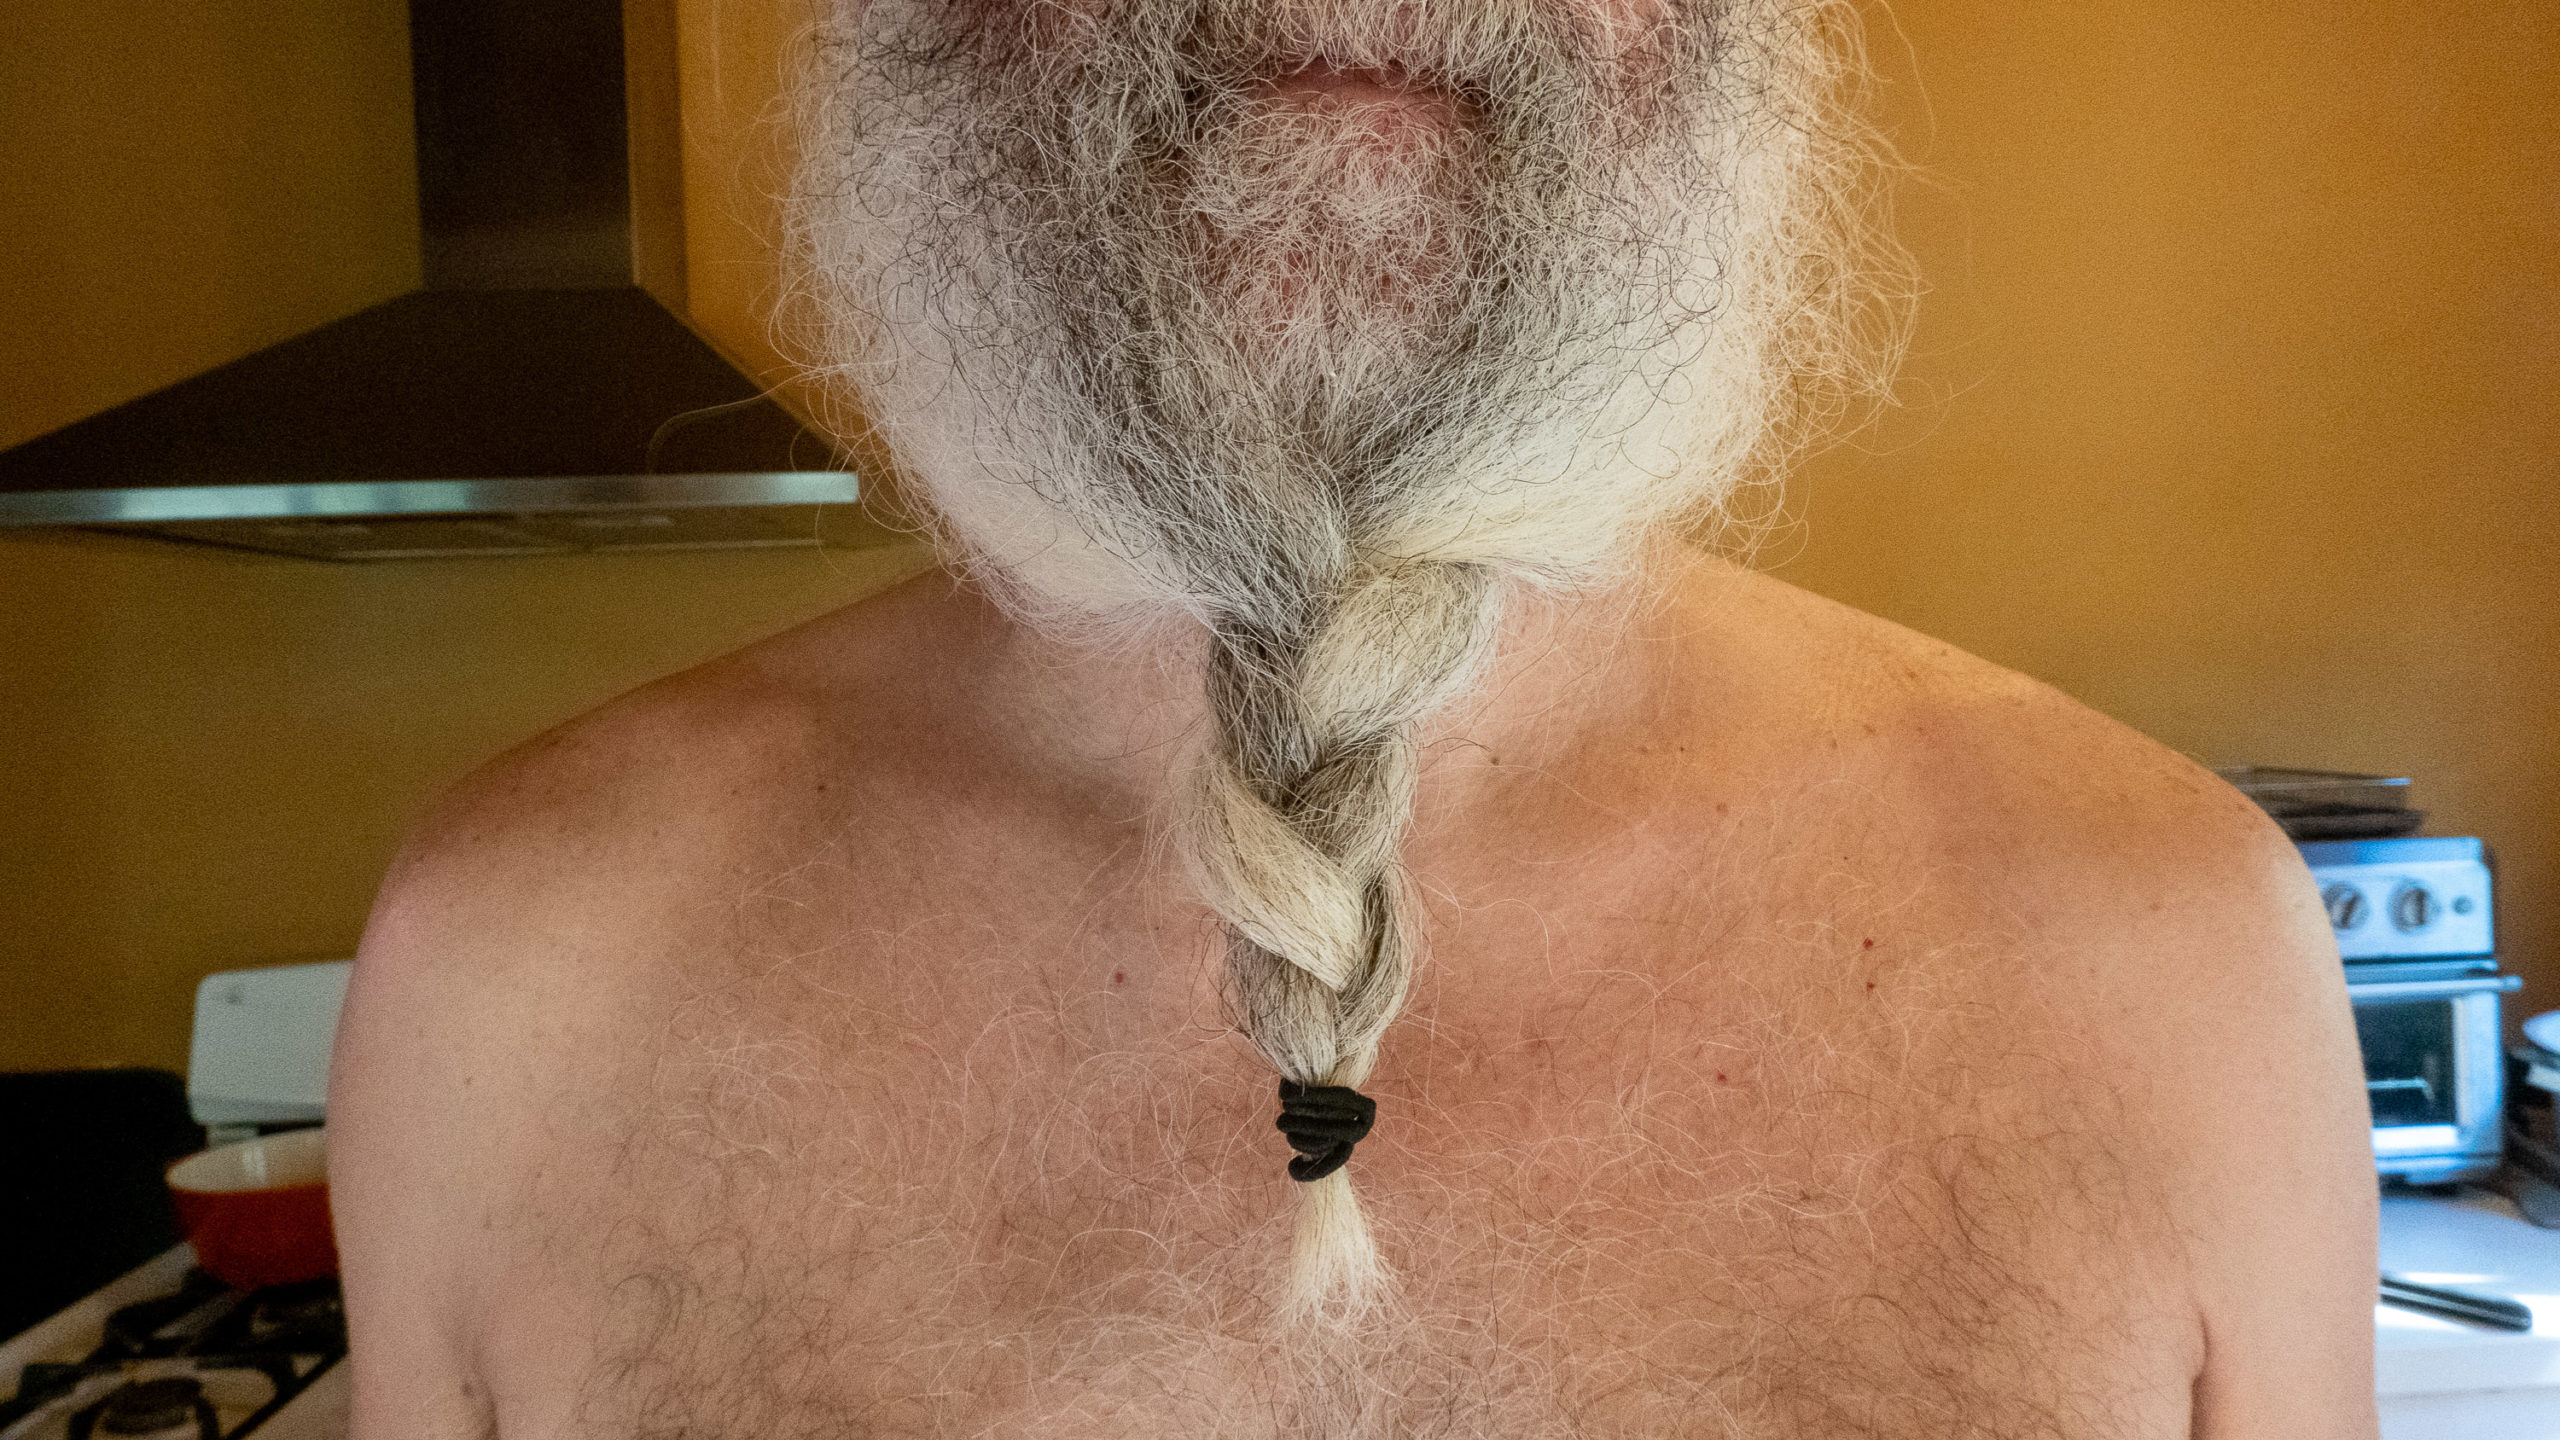 A man with a long beard that has been braided